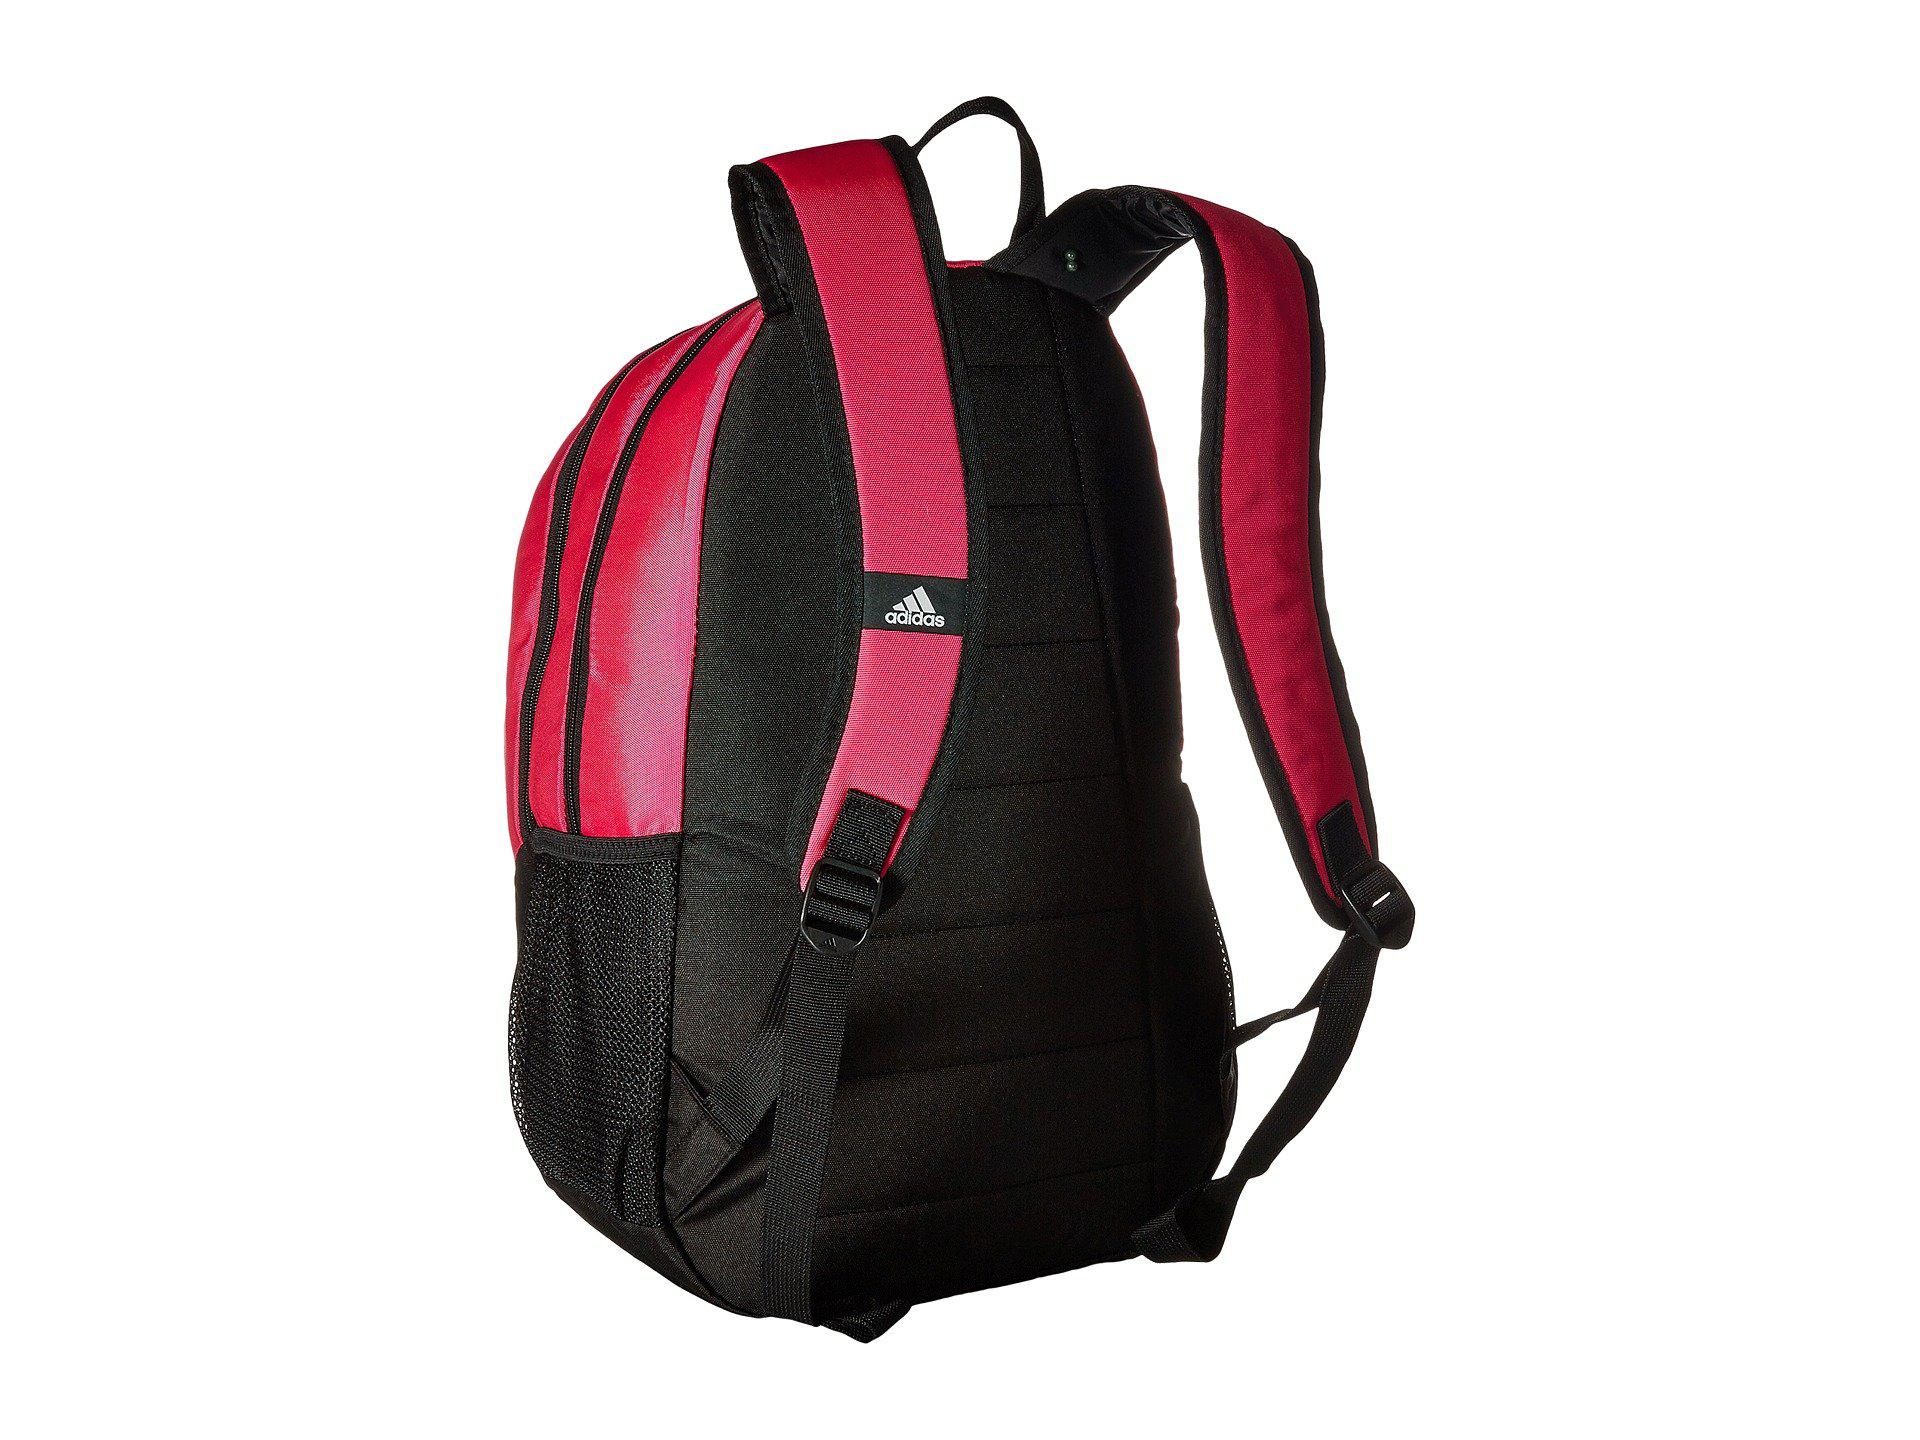 Adidas - Multicolor Striker Ii Team Backpack - Lyst. View fullscreen a38ea9964eb6b